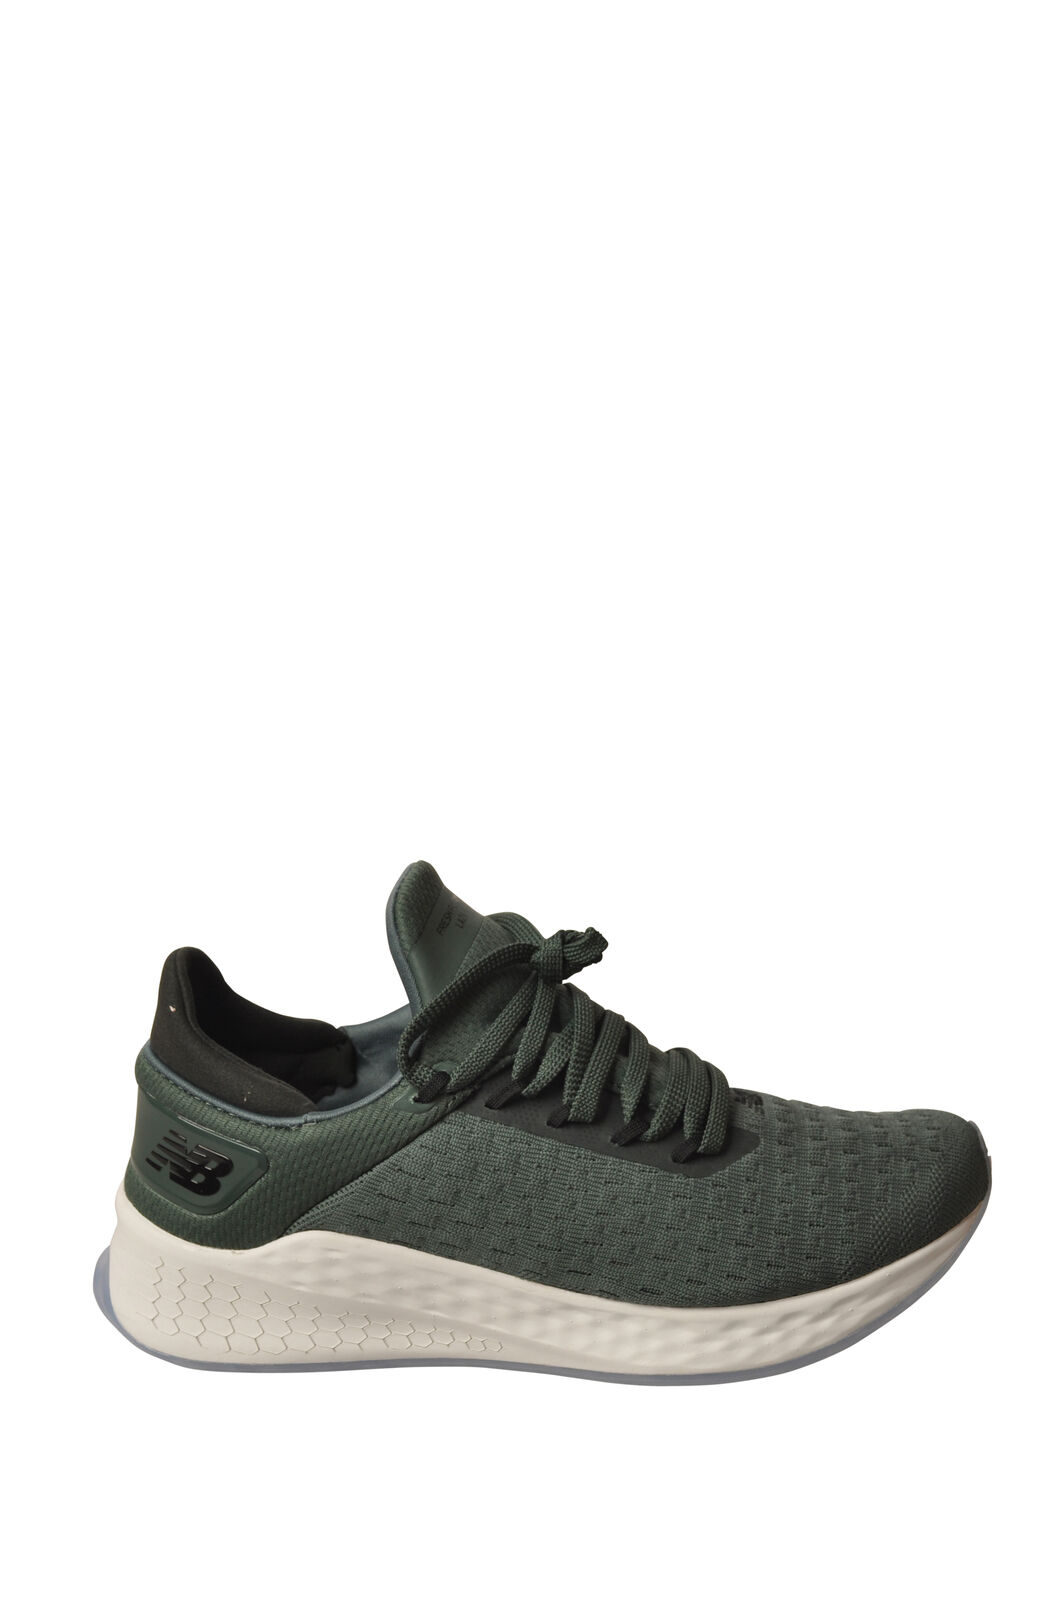 New Balance - scarpe-Lace Up - Man - verde - 6212302E190723